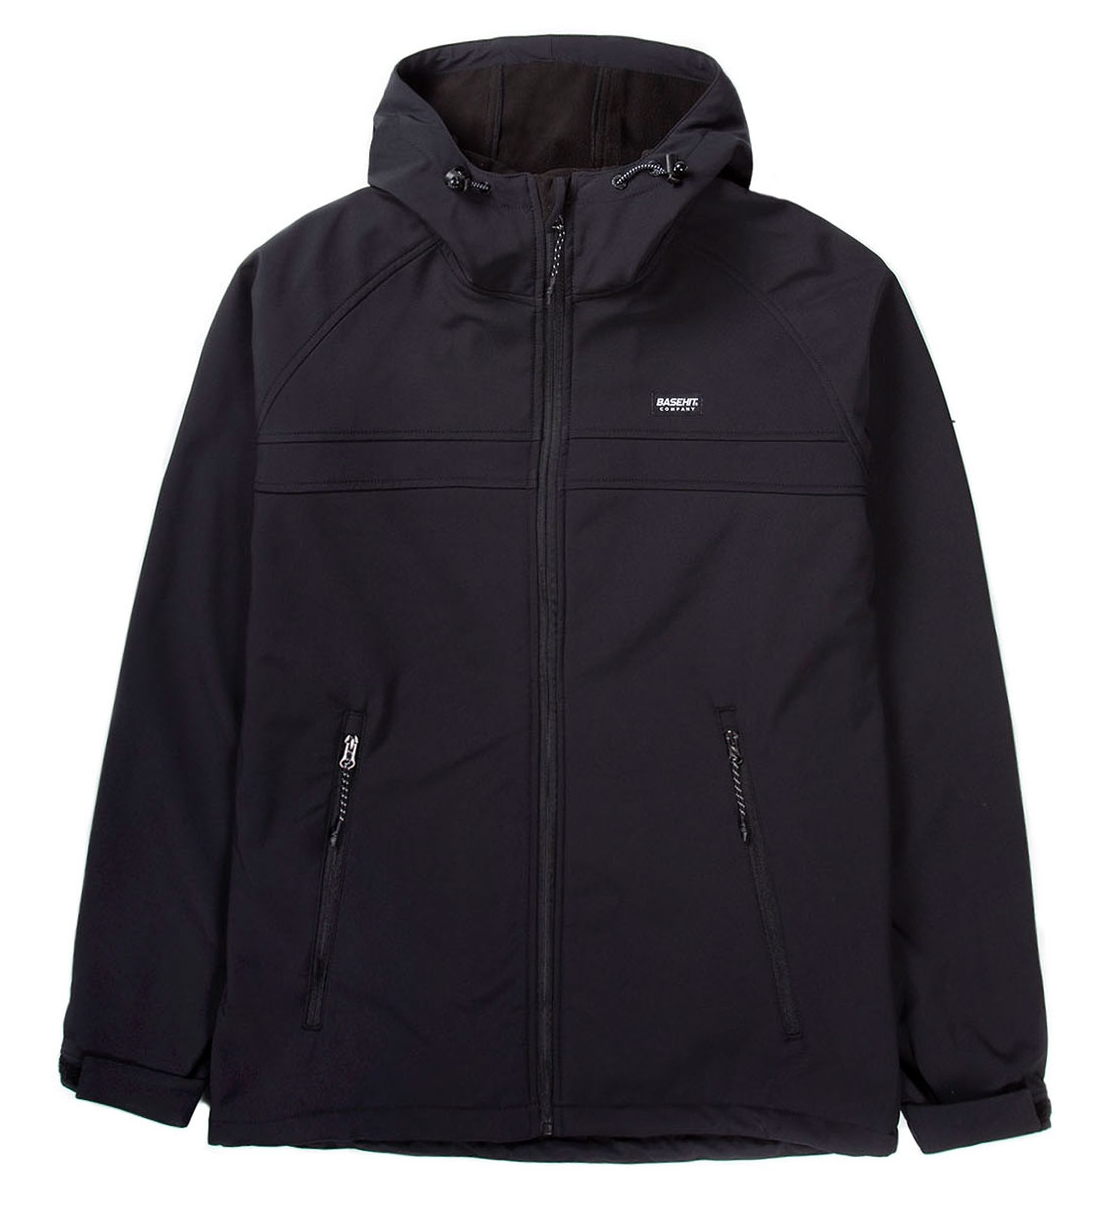 Basehit Ss19 Men'S Soft Shell Jacket With Hood